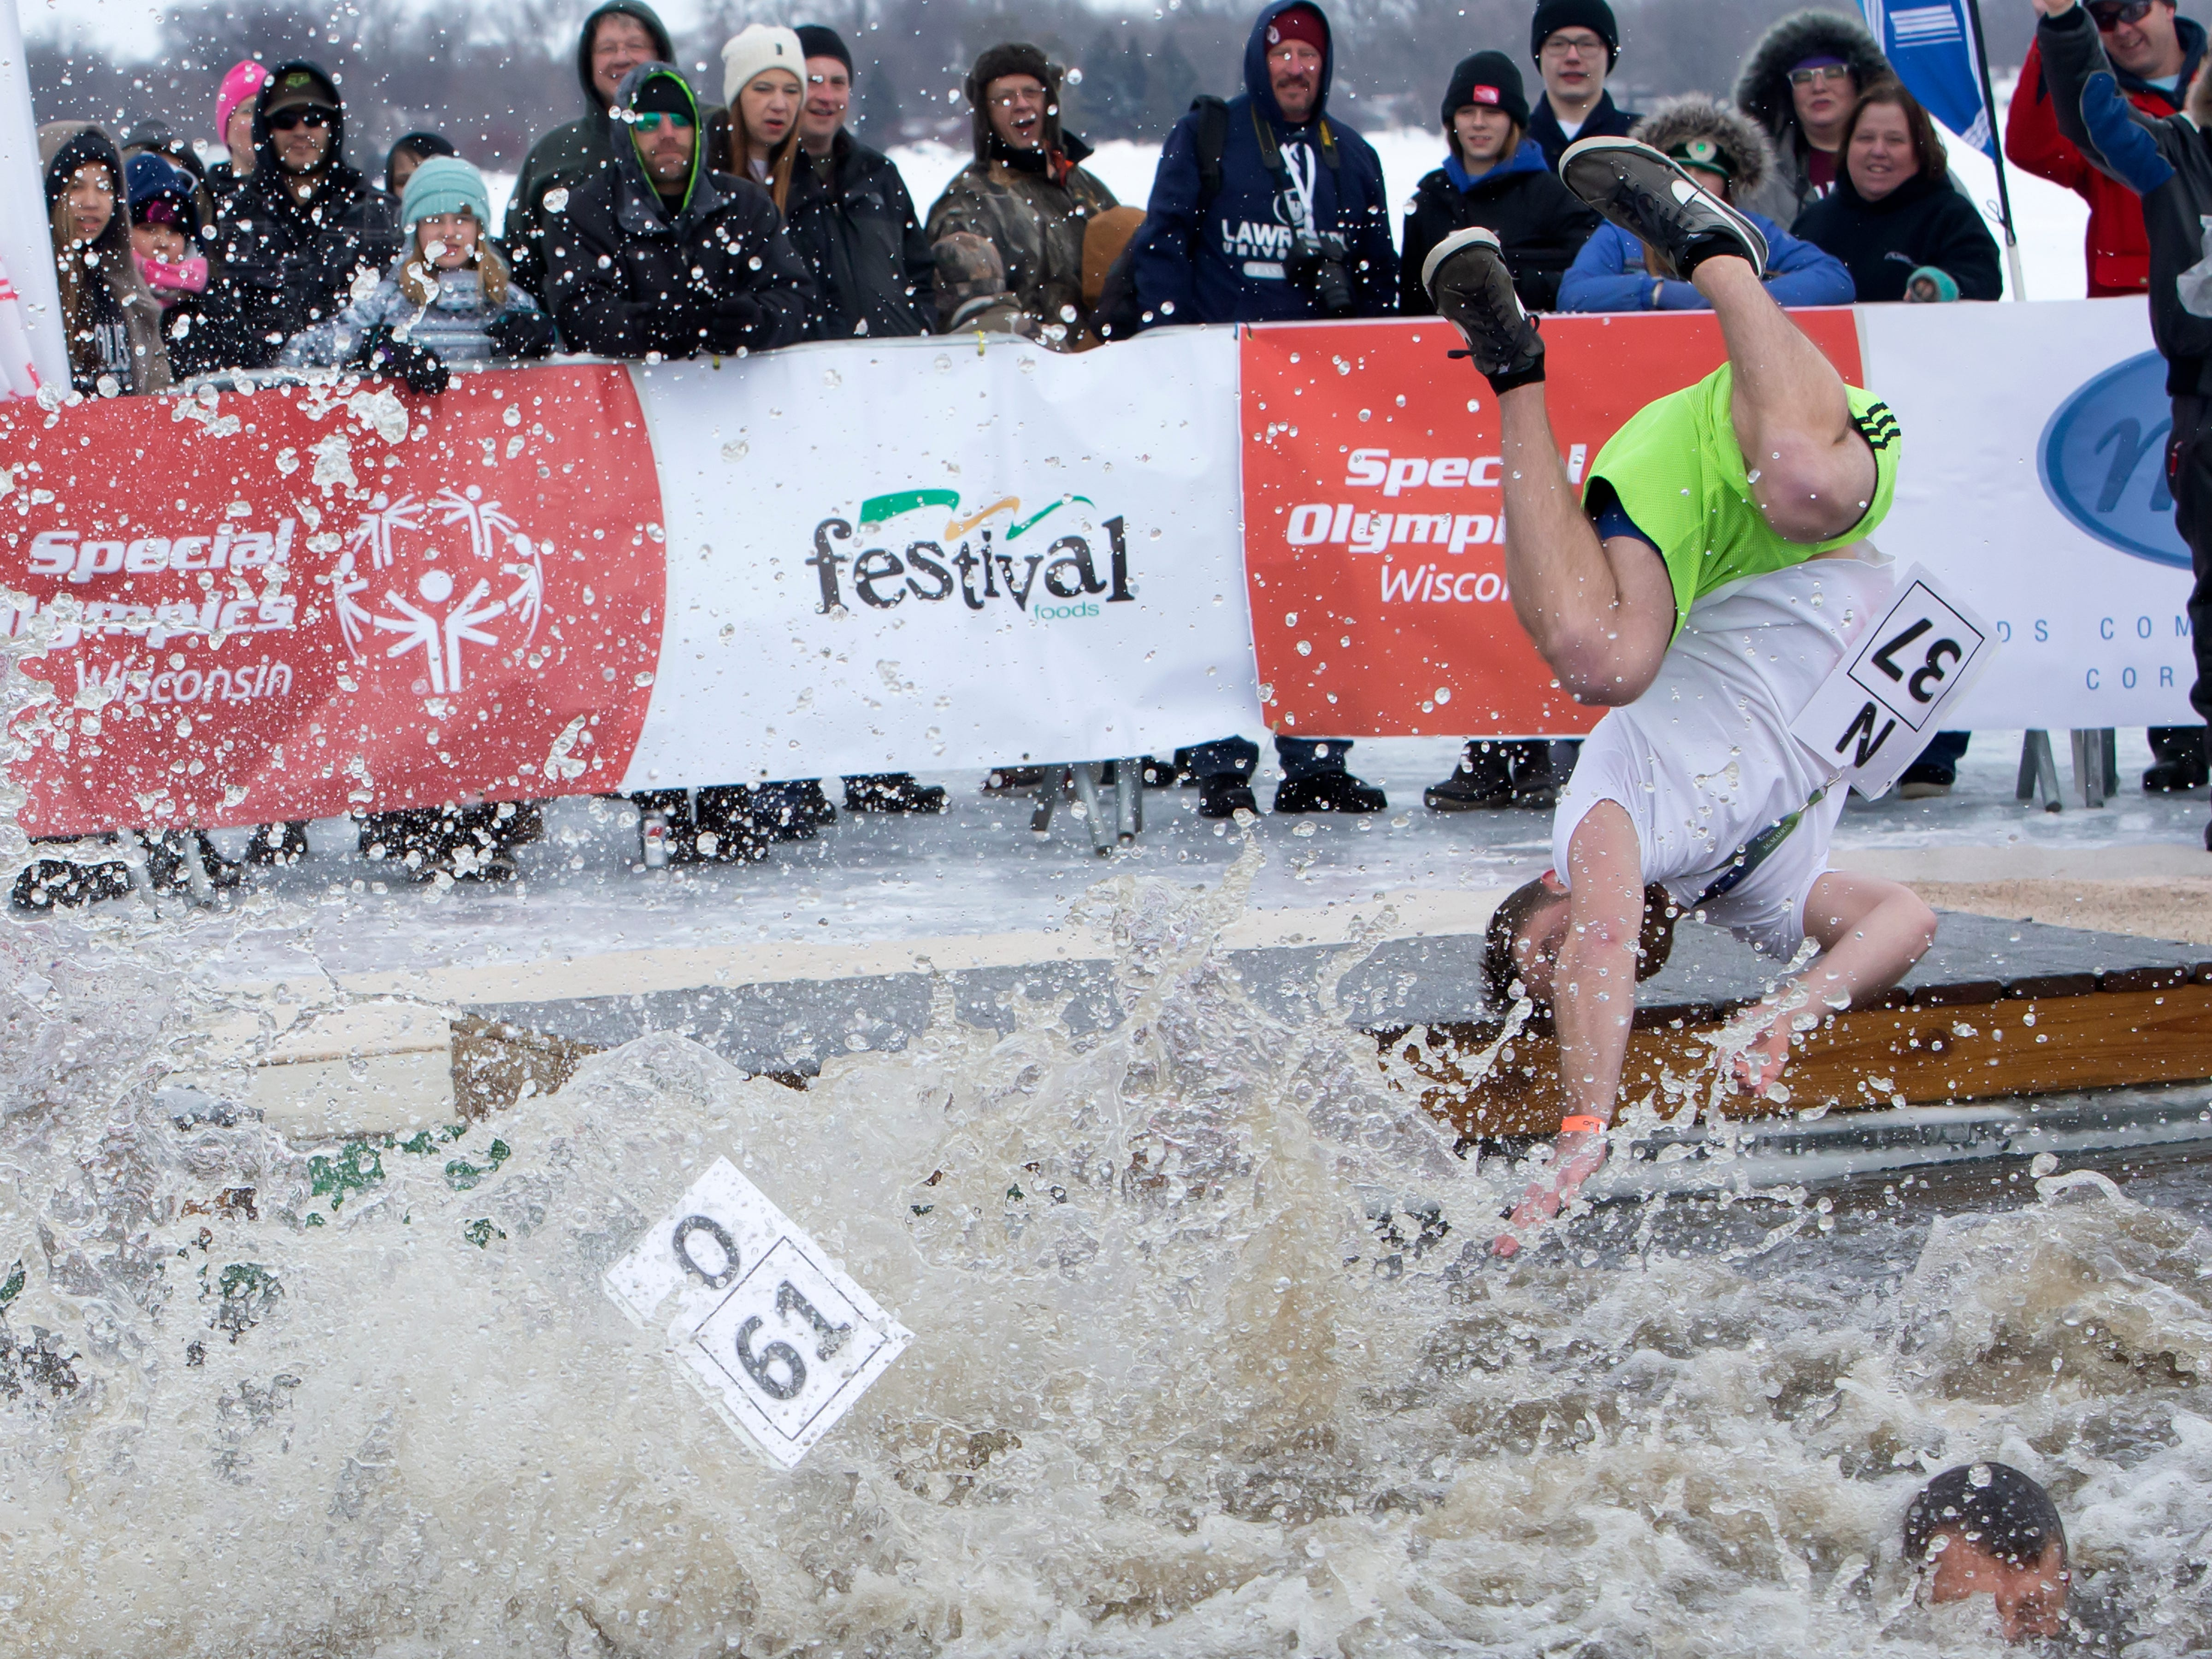 McMahon employees participant in the Special Olympics Wisconsin Polar Plunge in Oshkosh, Wis., on Saturday, February 16, 2019, at Miller's Bay in Menominee Park.